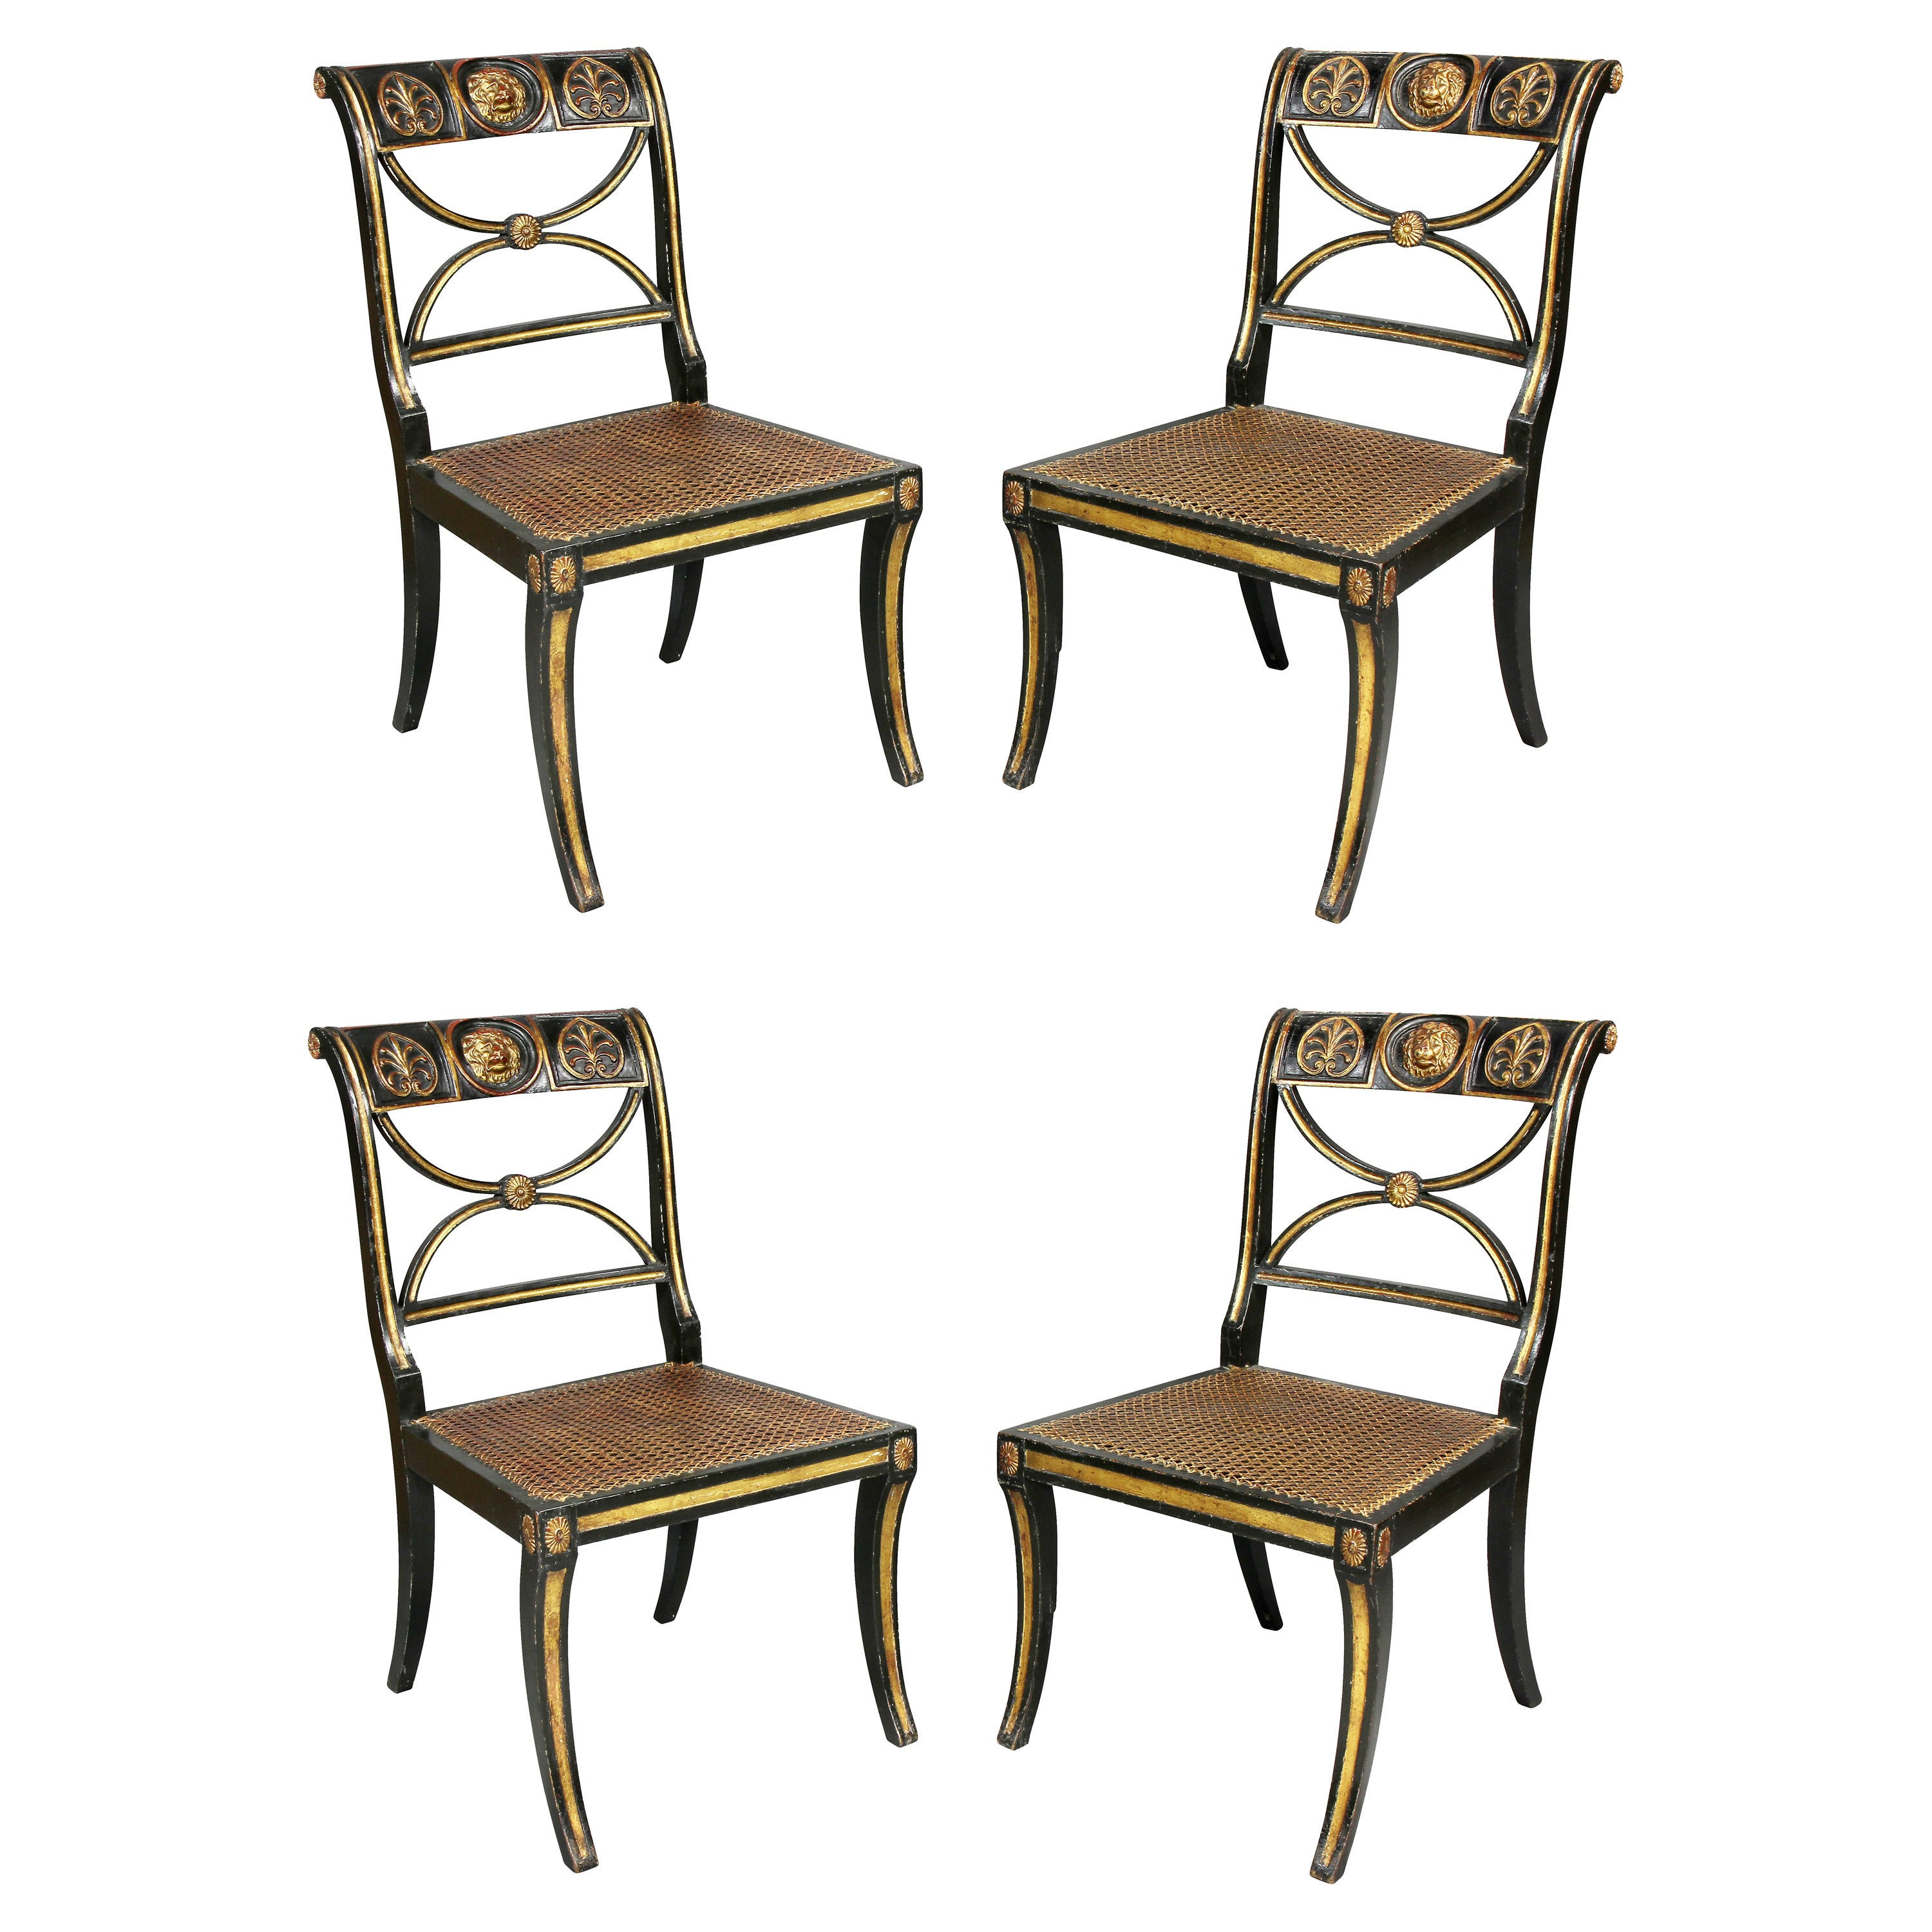 Set of Four Regency Ebonized and Giltwood Chairs